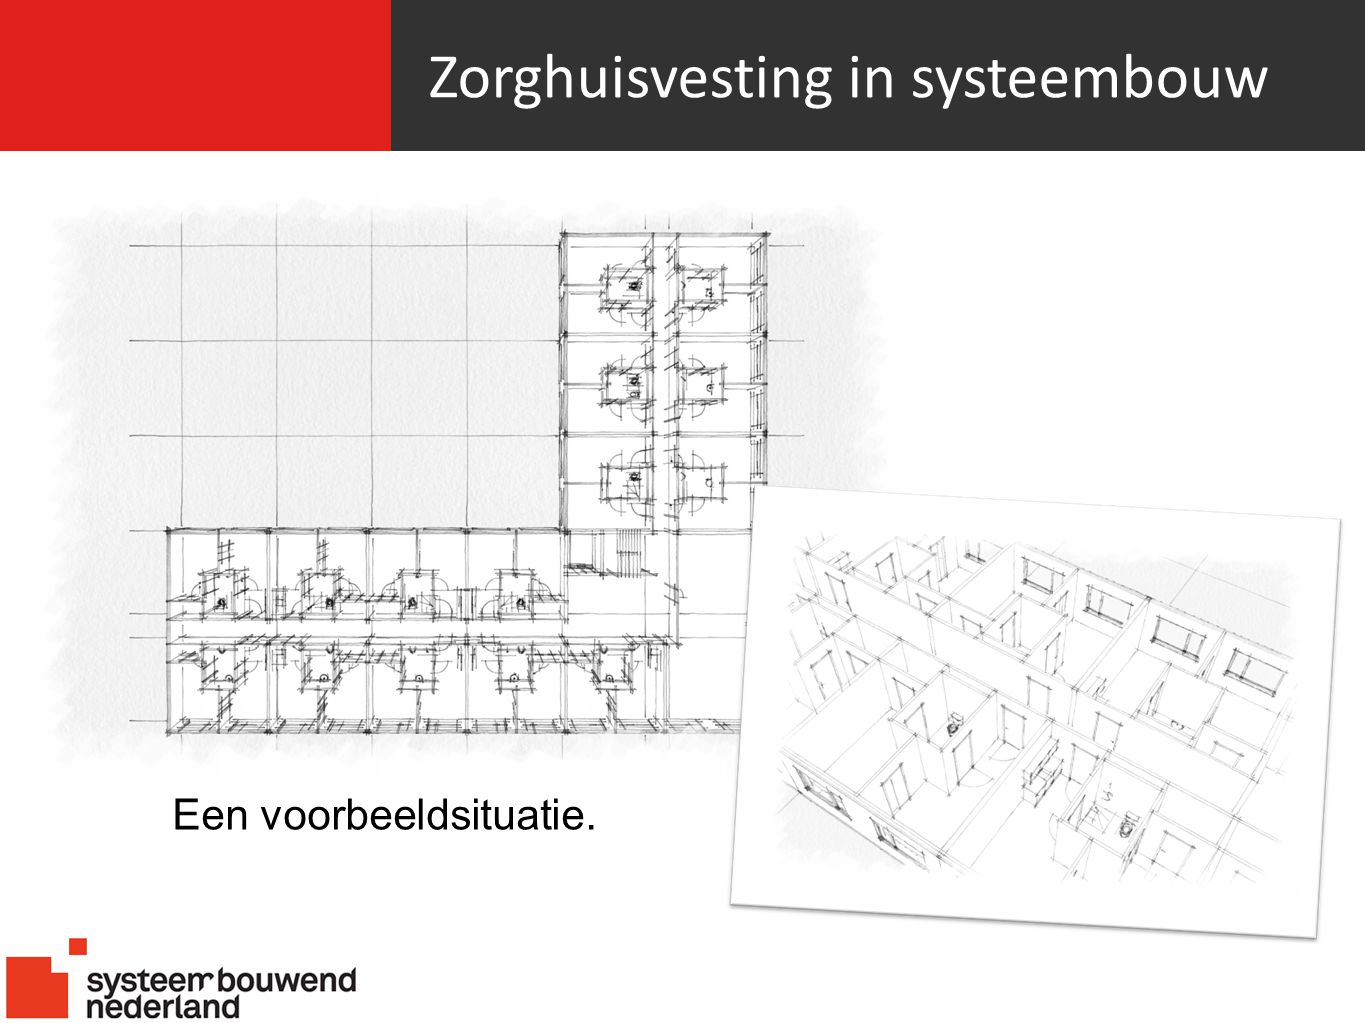 Zorghuisvesting in systeembouw